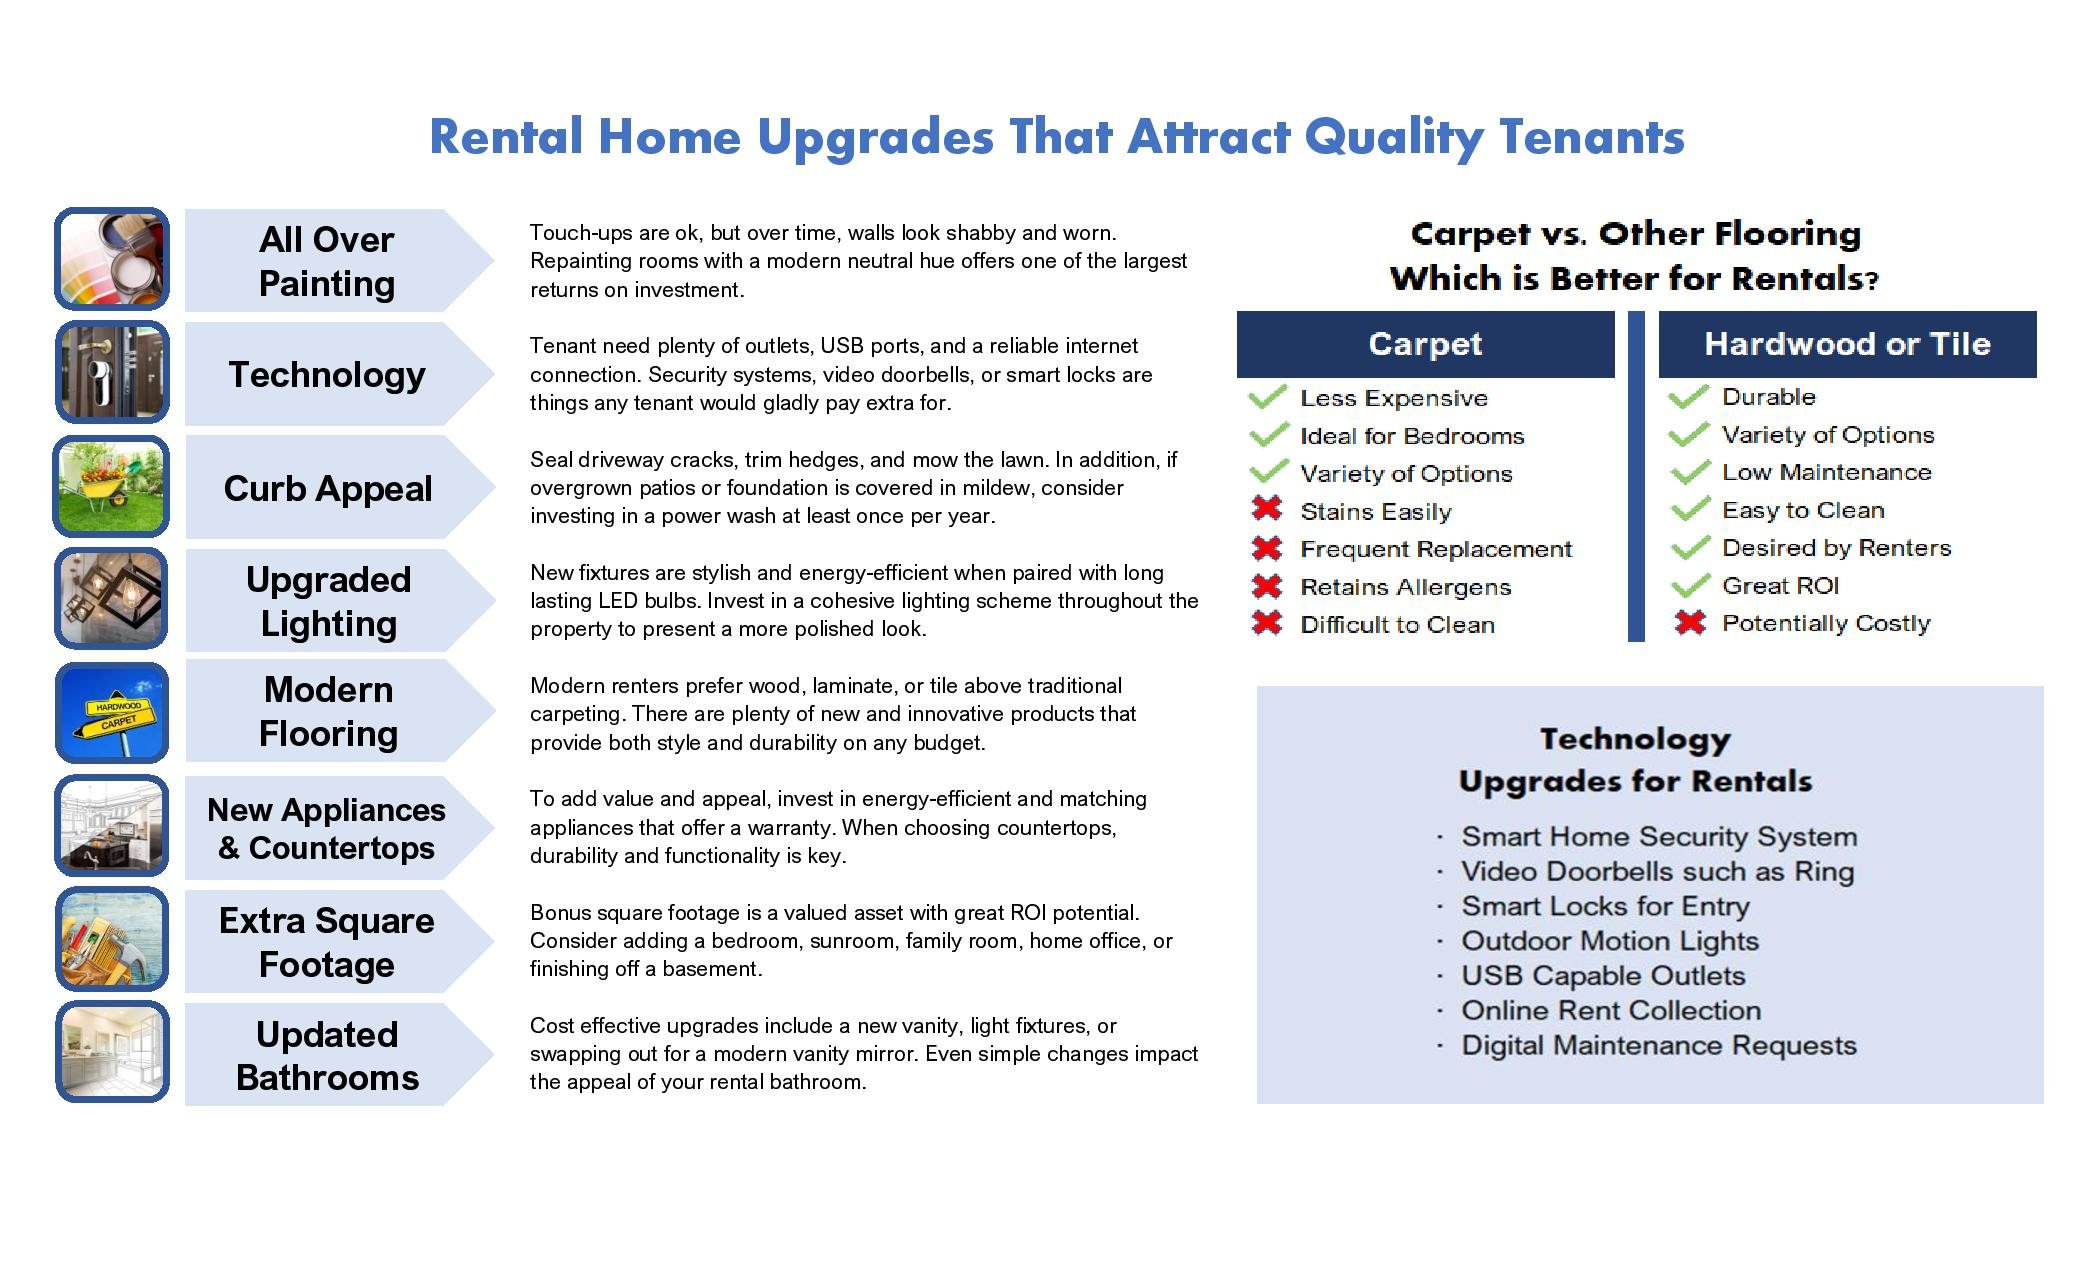 Rental Home Upgrades to Attract Quality Tenants